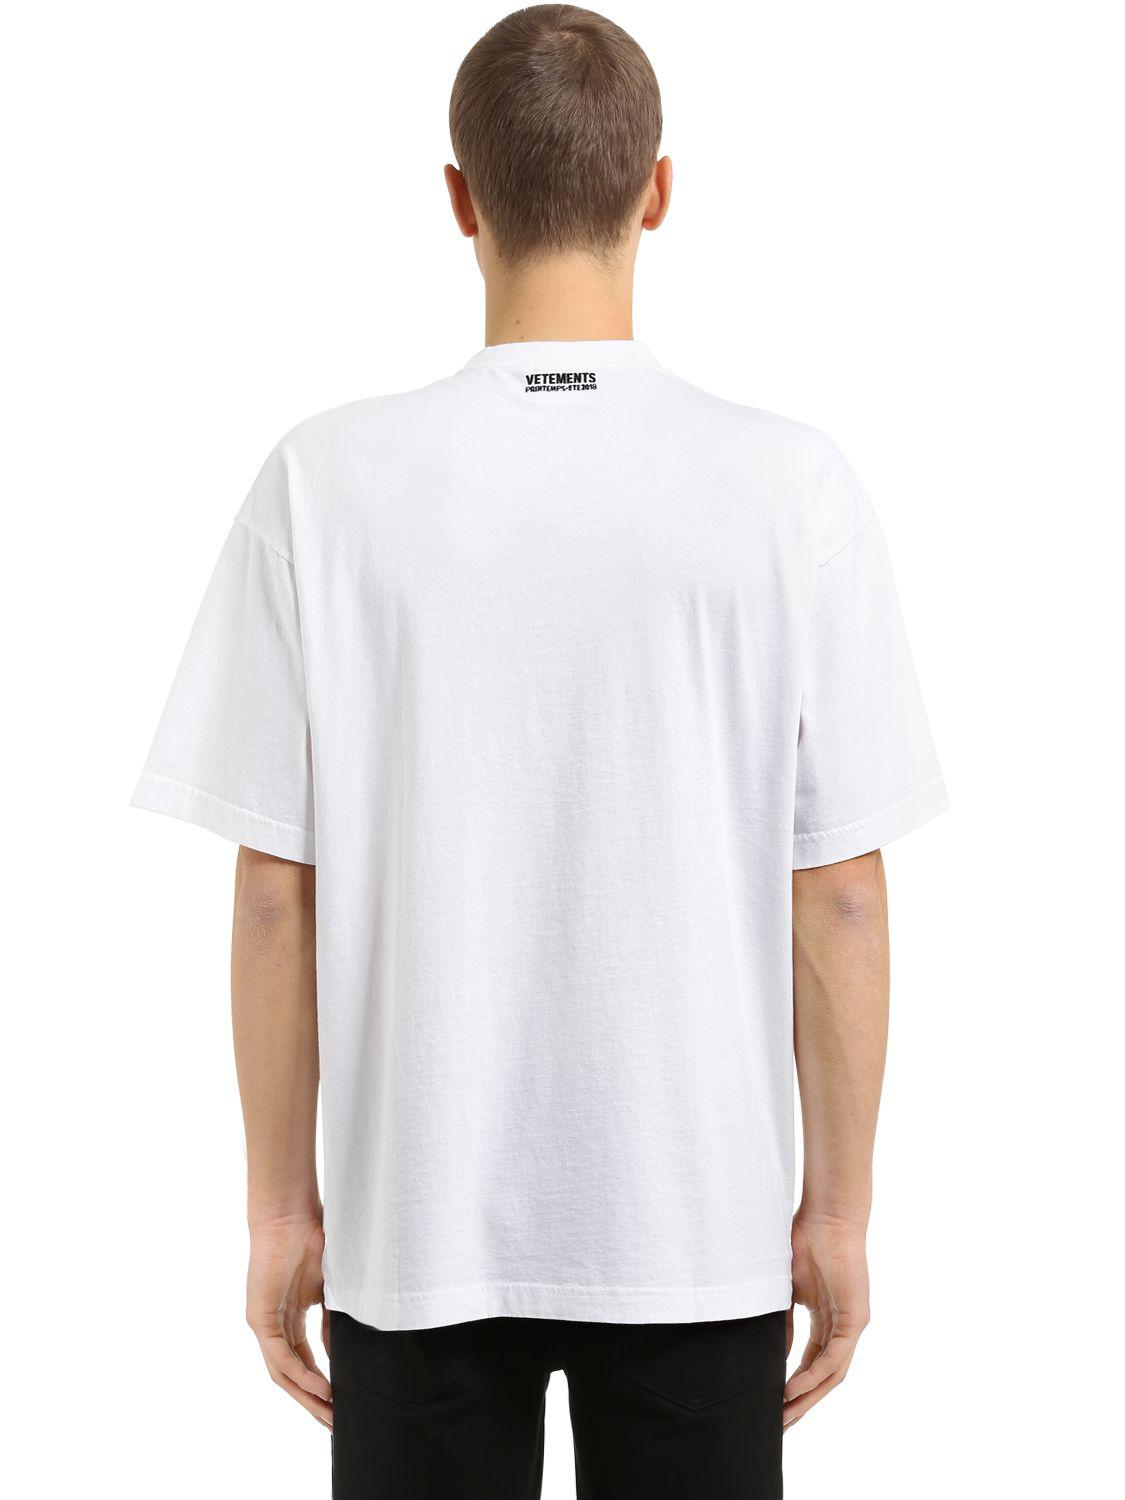 Vetements Oversized Haute Couture Jersey T Shirt In White